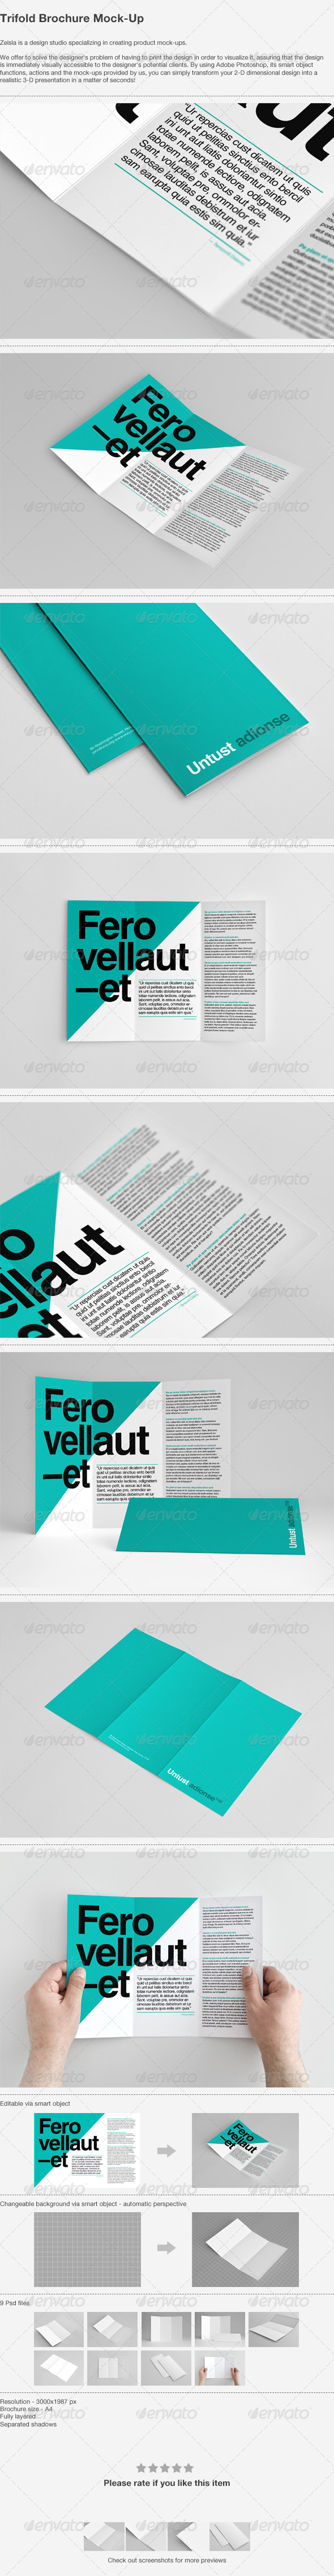 Graphicriver | Trifold Brochure Mock-Up Free Download free download Graphicriver | Trifold Brochure Mock-Up Free Download nulled Graphicriver | Trifold Brochure Mock-Up Free Download